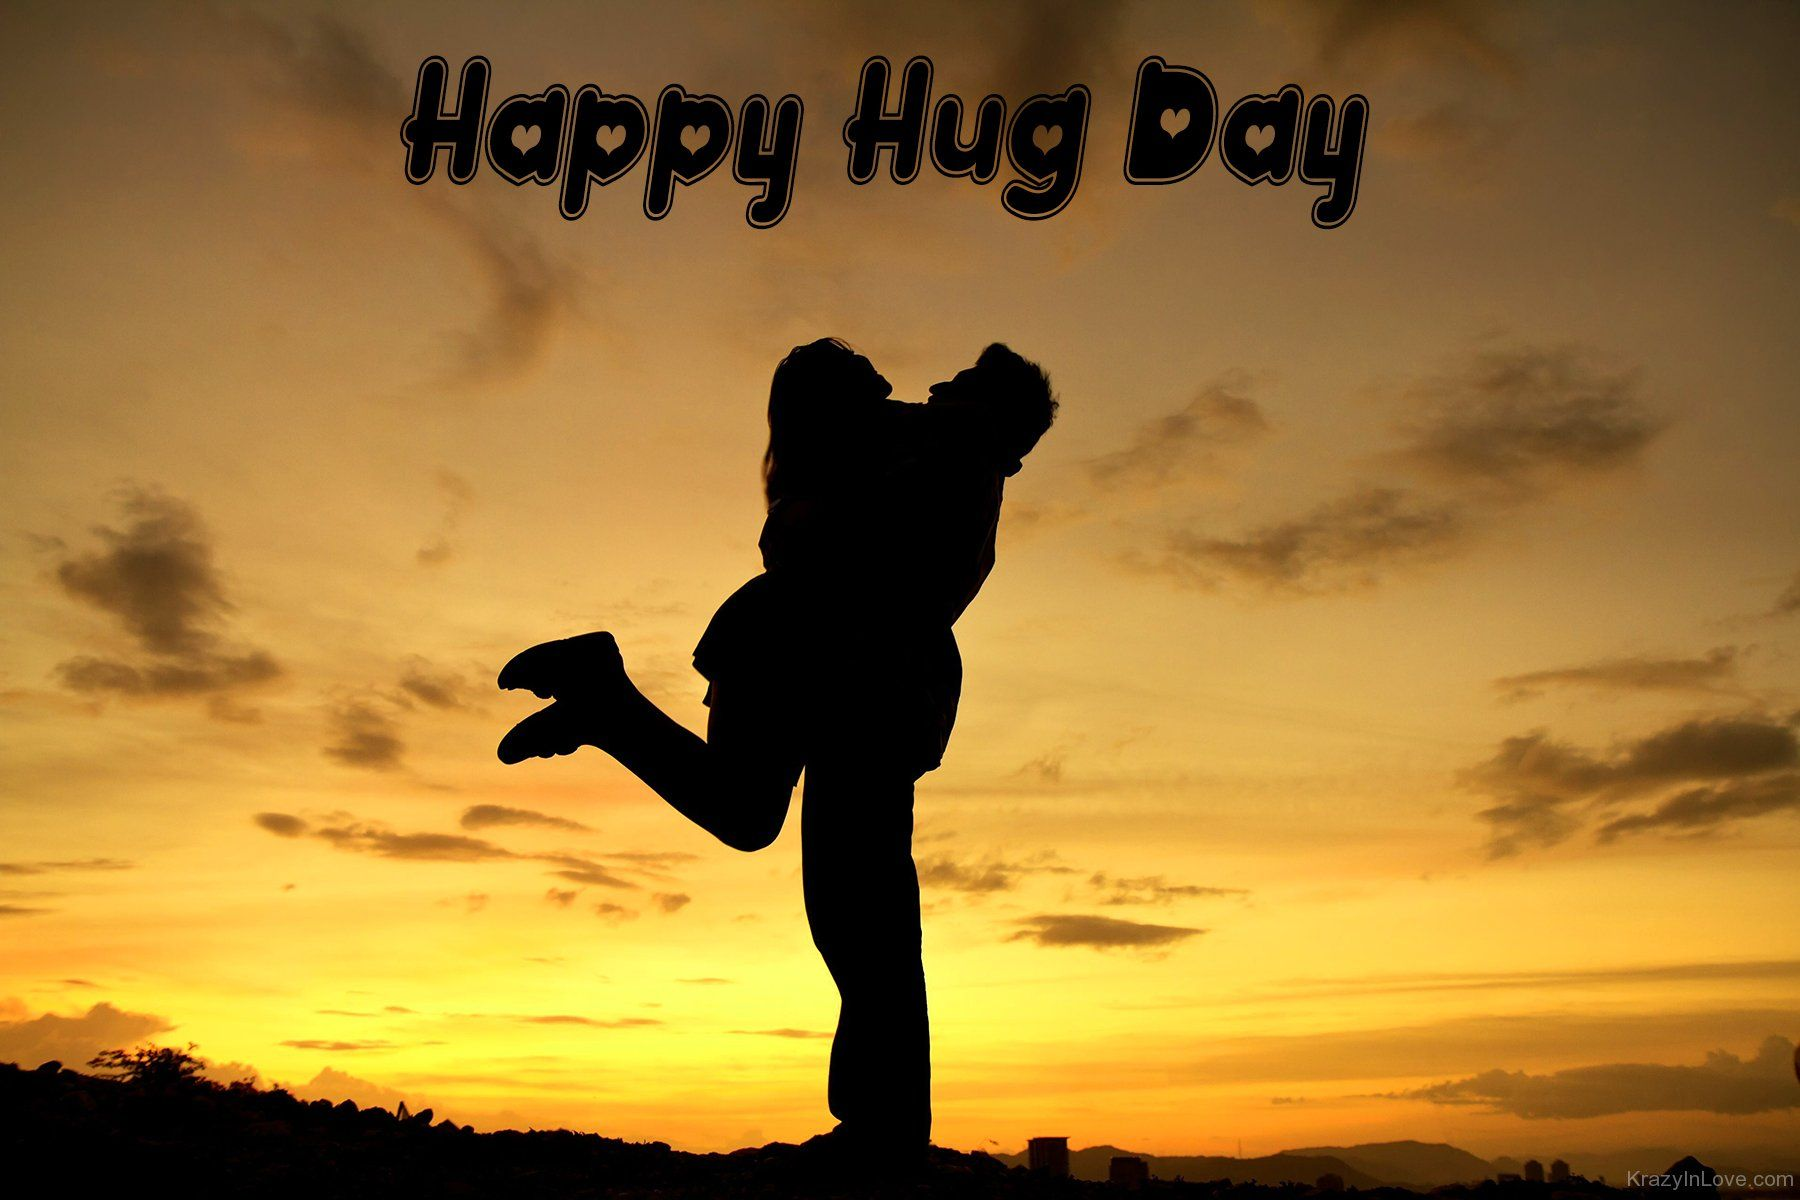 hug day couple image happy hug day 2014 wishes and quotes